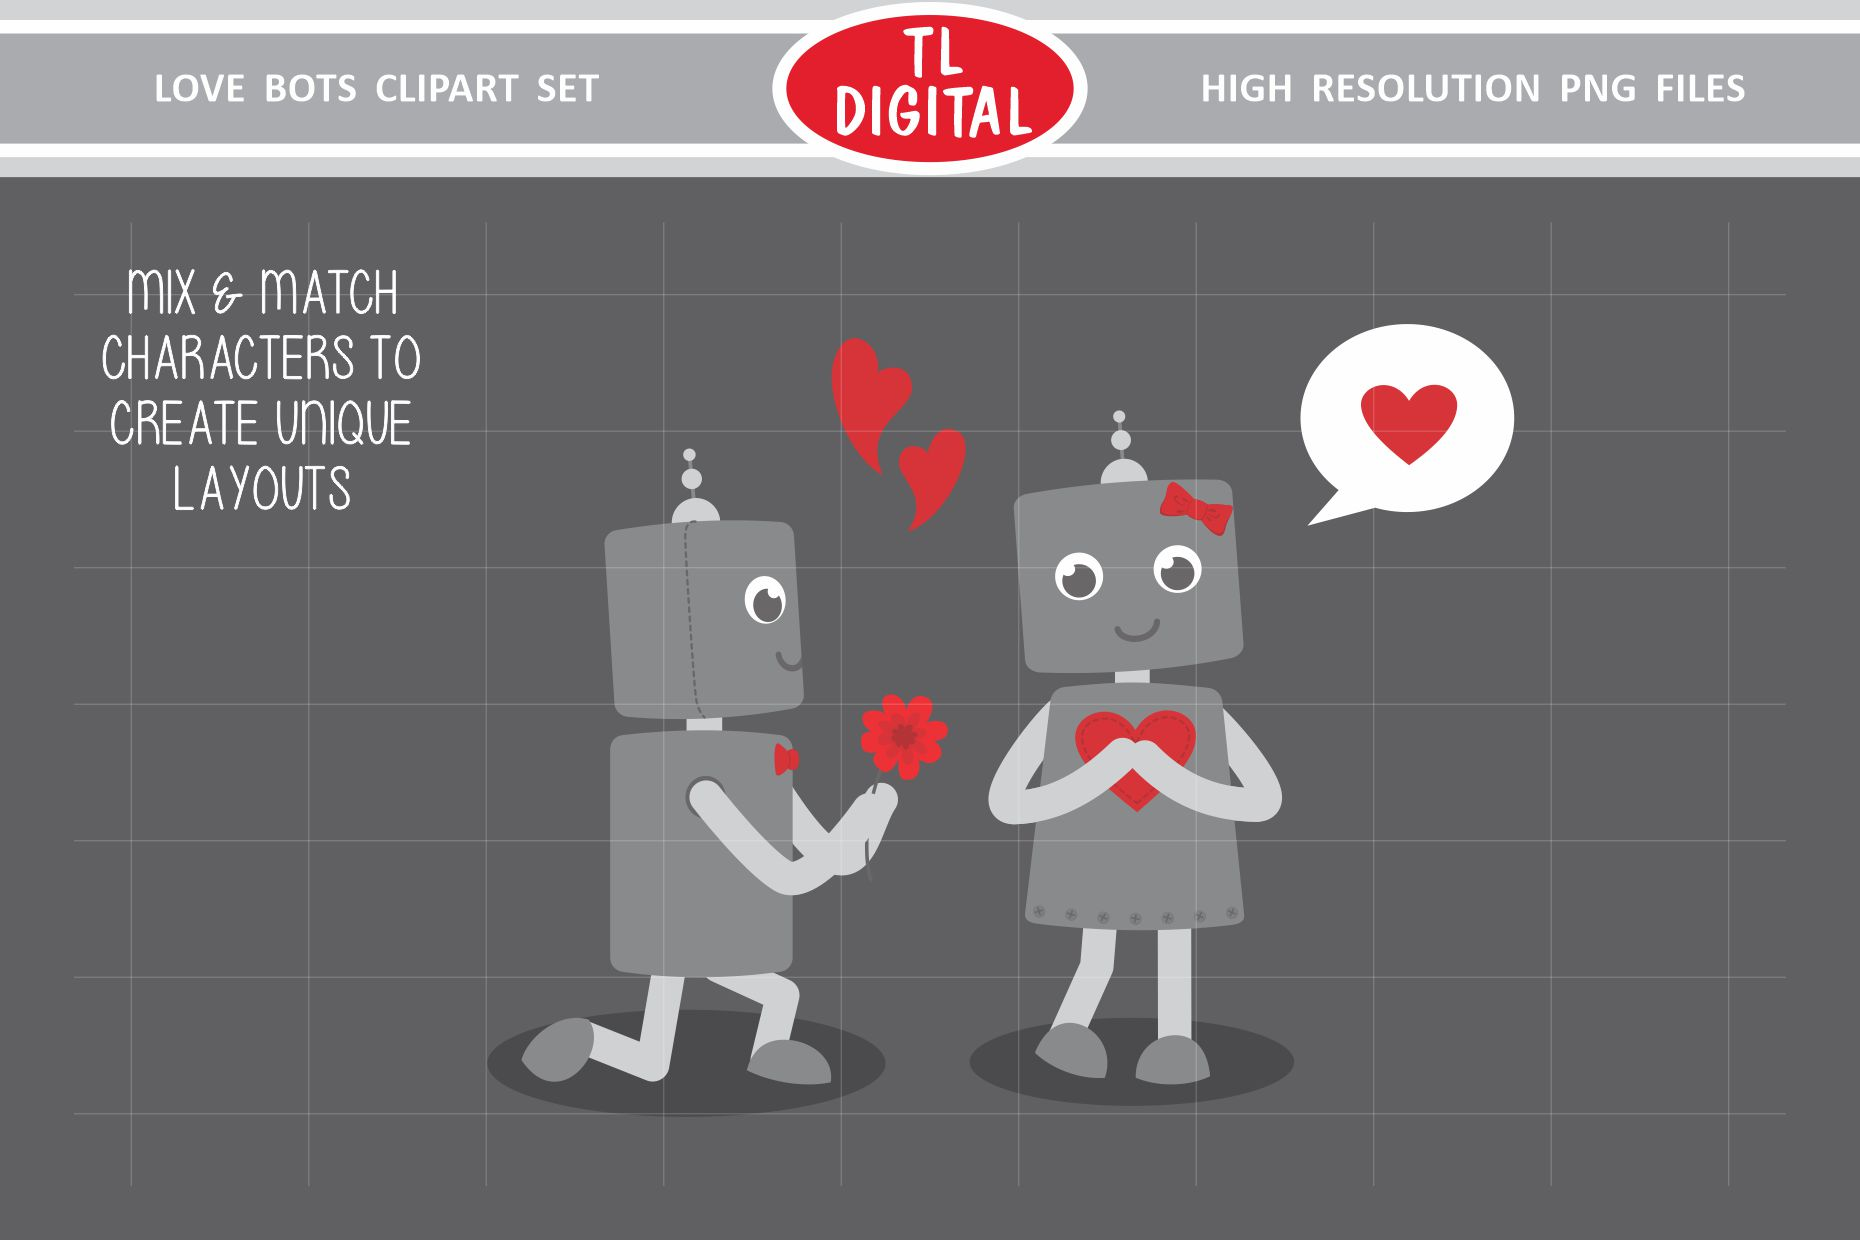 Love Robots Clipart Set - 13 Valentines PNG Graphics example image 2